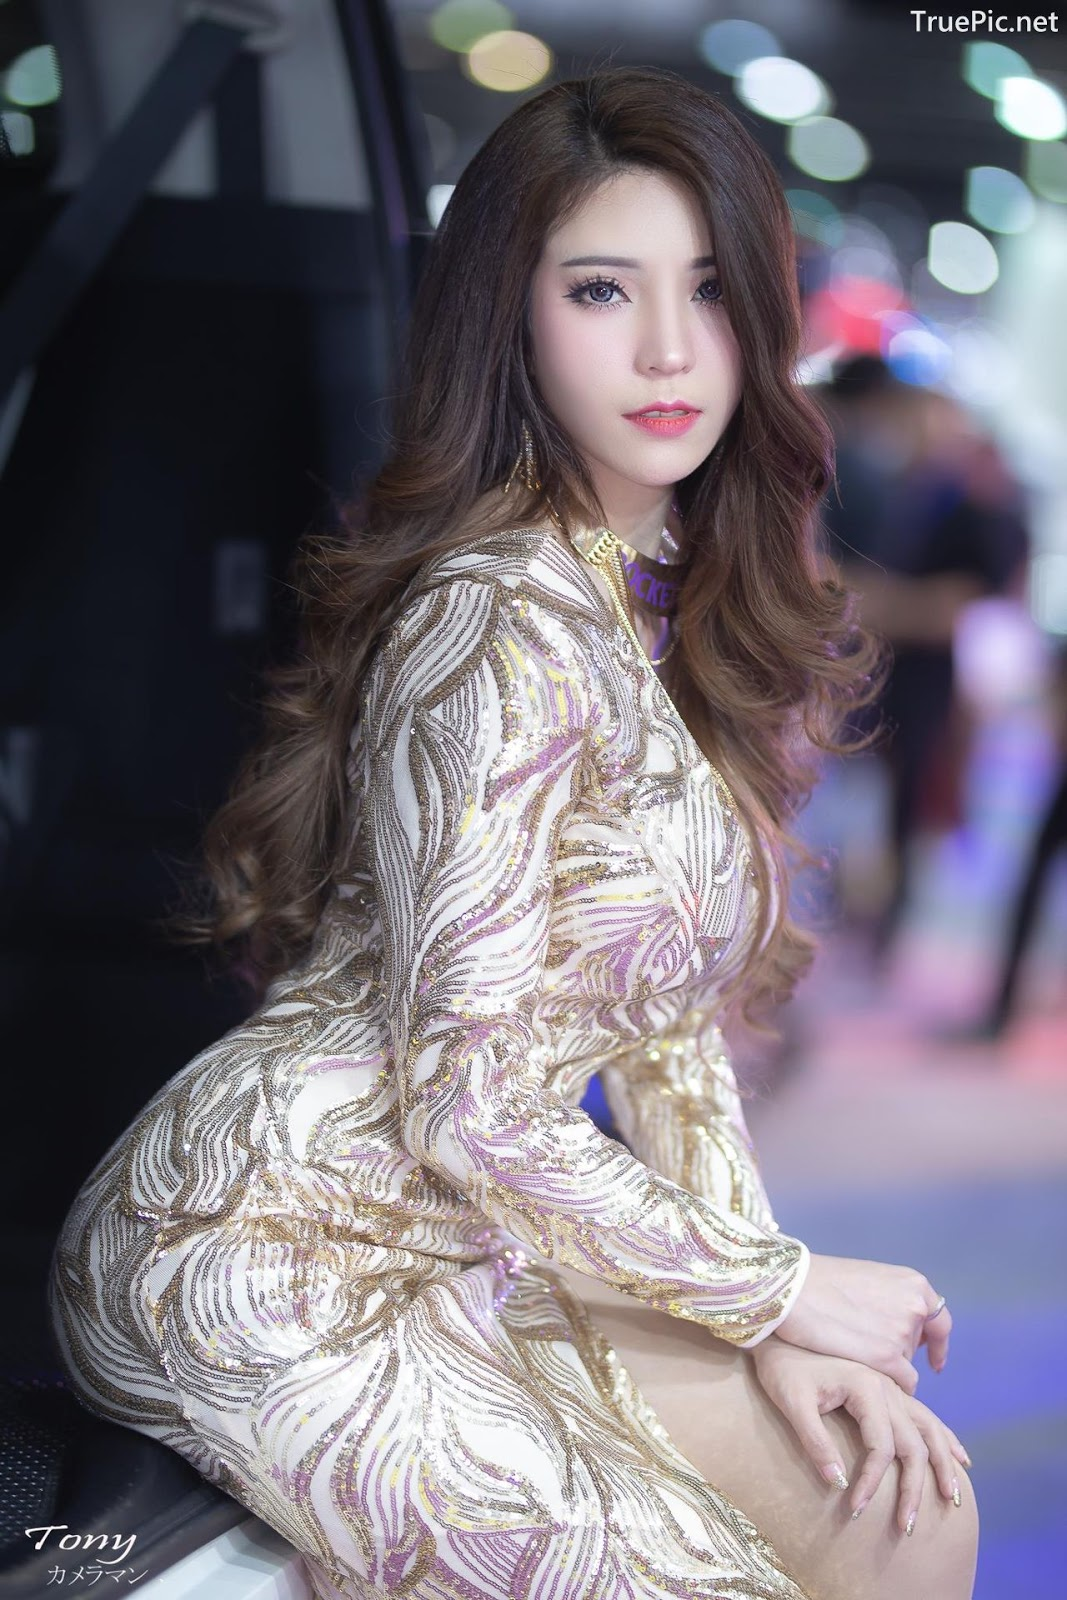 Image-Thailand-Hot-Model-Thai-Racing-Girl-At-Motor-Expo-2018-TruePic.net- Picture-1